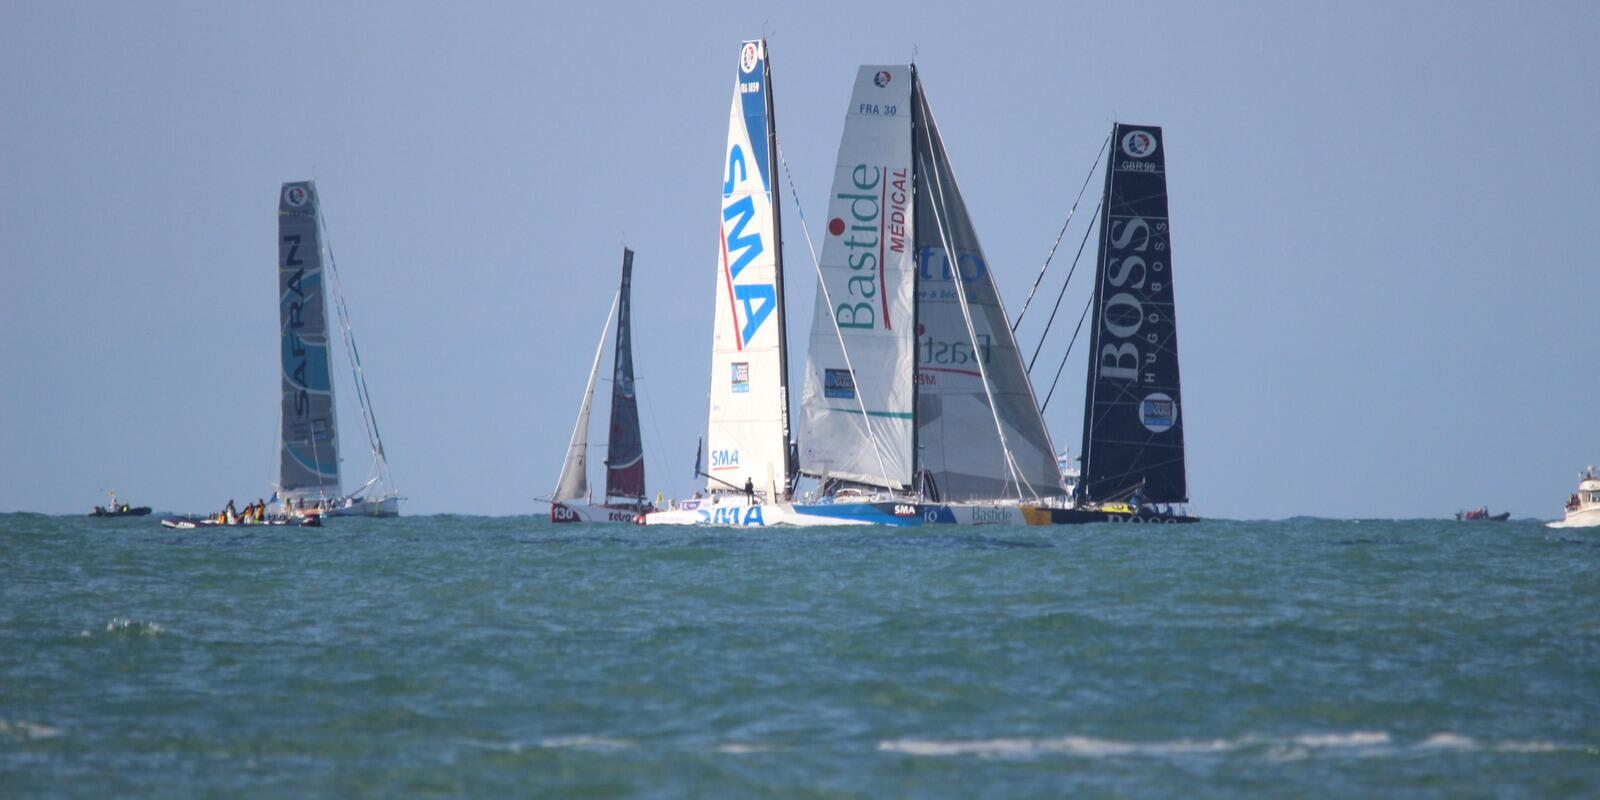 Departure of Jacques Vabre with sailing practice.